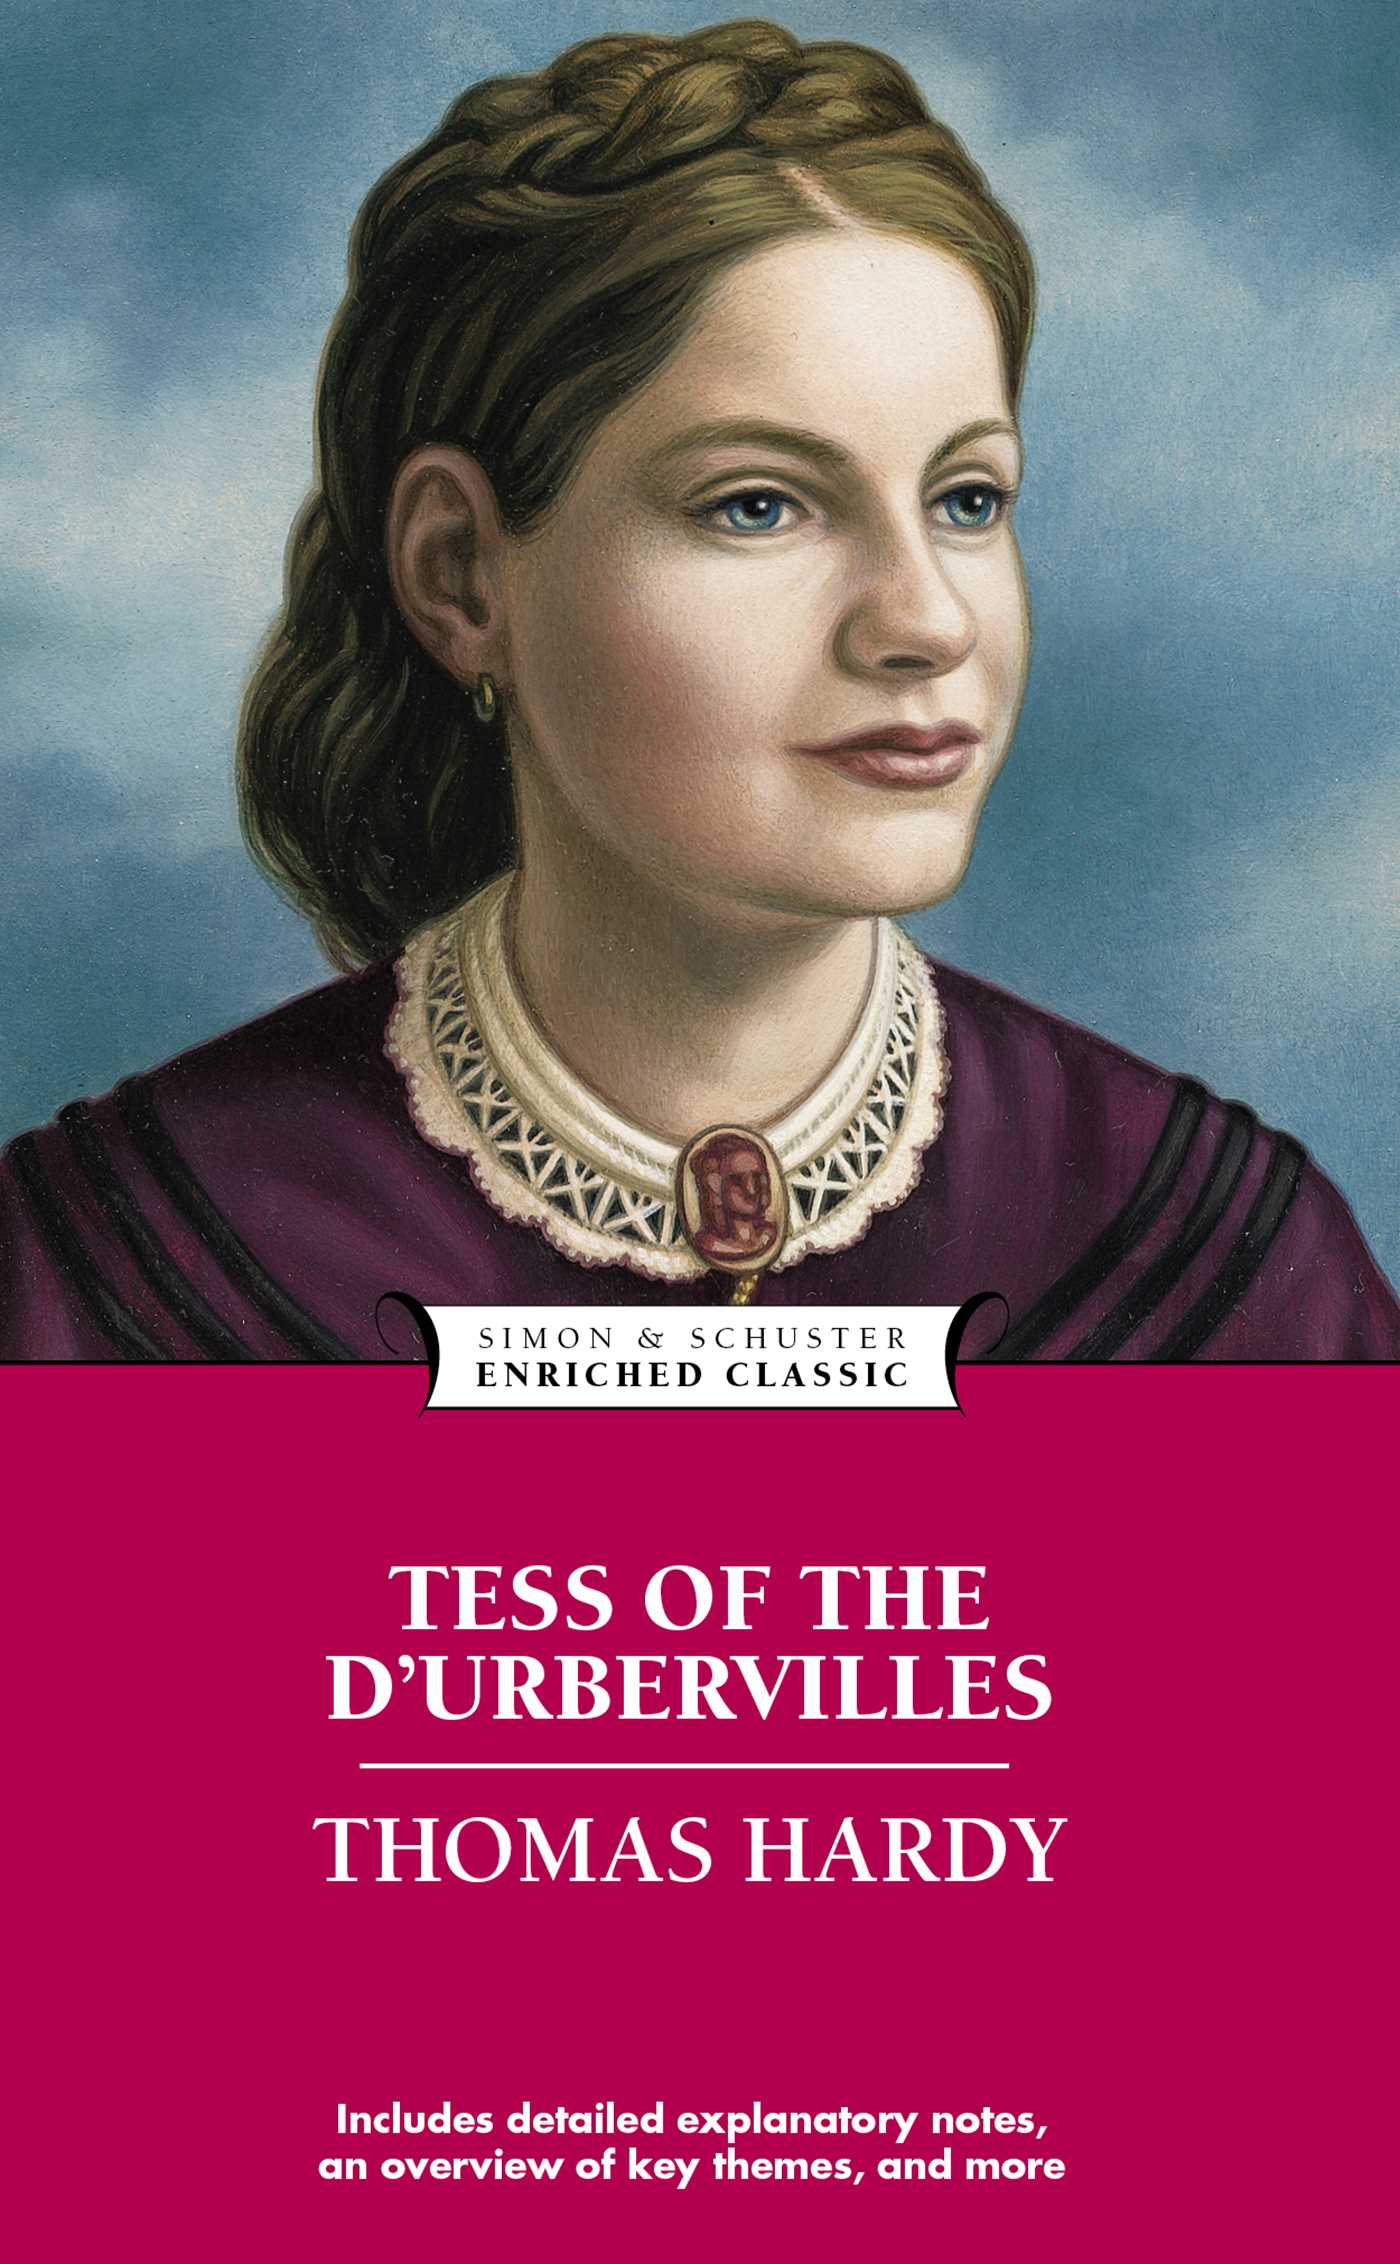 the theme of nature in tess of the durbervilles by thomas hardy A discussion of important themes running throughout tess of the d'urbervilles thomas hardy this study guide in tess sex is often associated with nature.